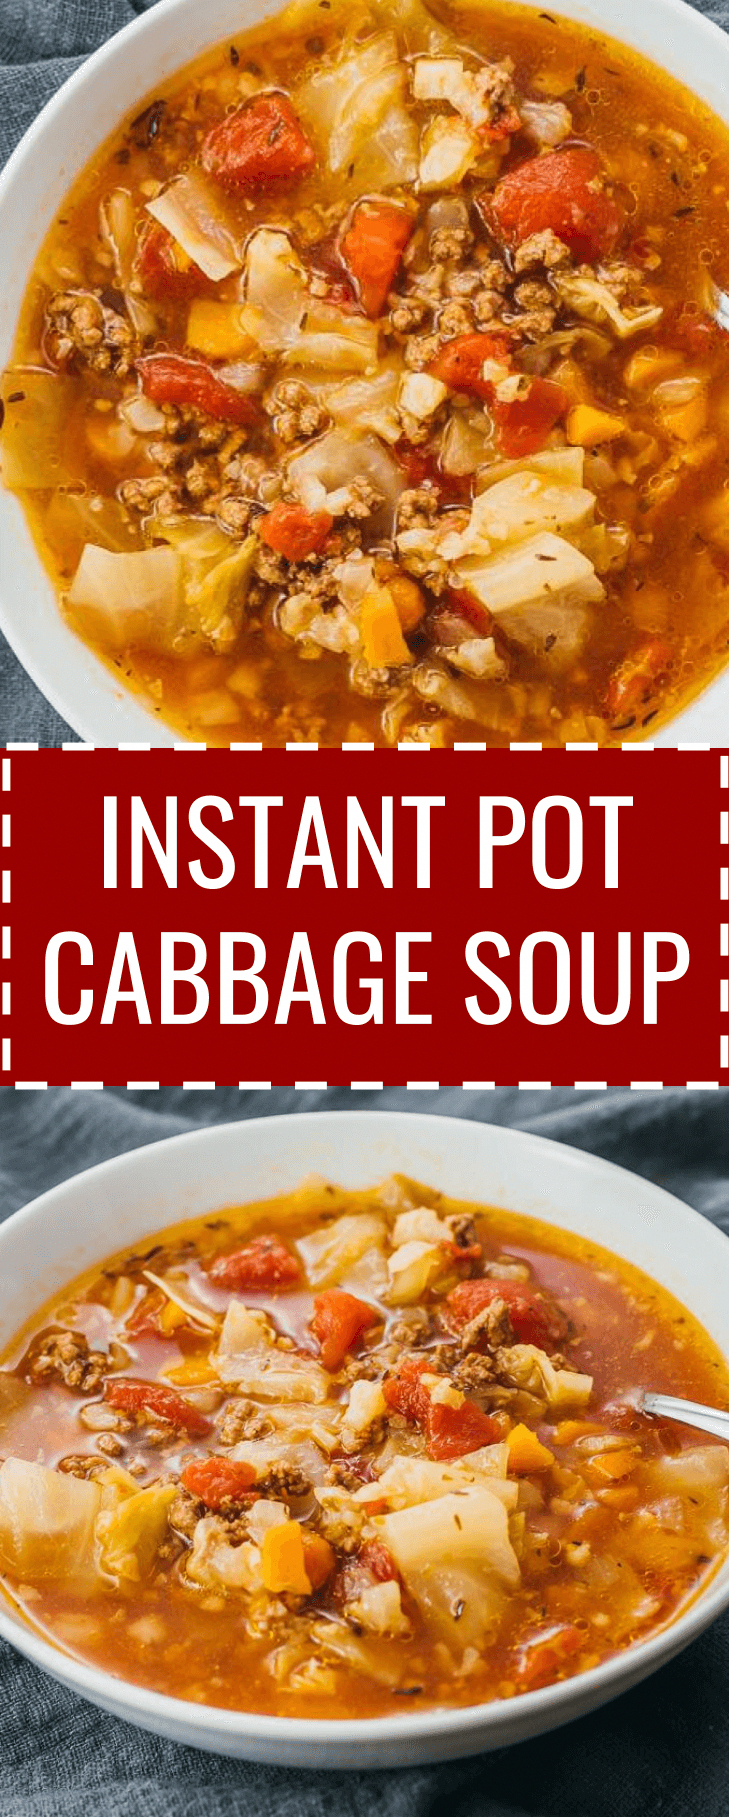 This Hearty Instant Pot Cabbage Soup Recipe With Ground Beef Is Great For Anyone On A Instant Pot Dinner Recipes Cabbage Soup Recipes Easy Instant Pot Recipes